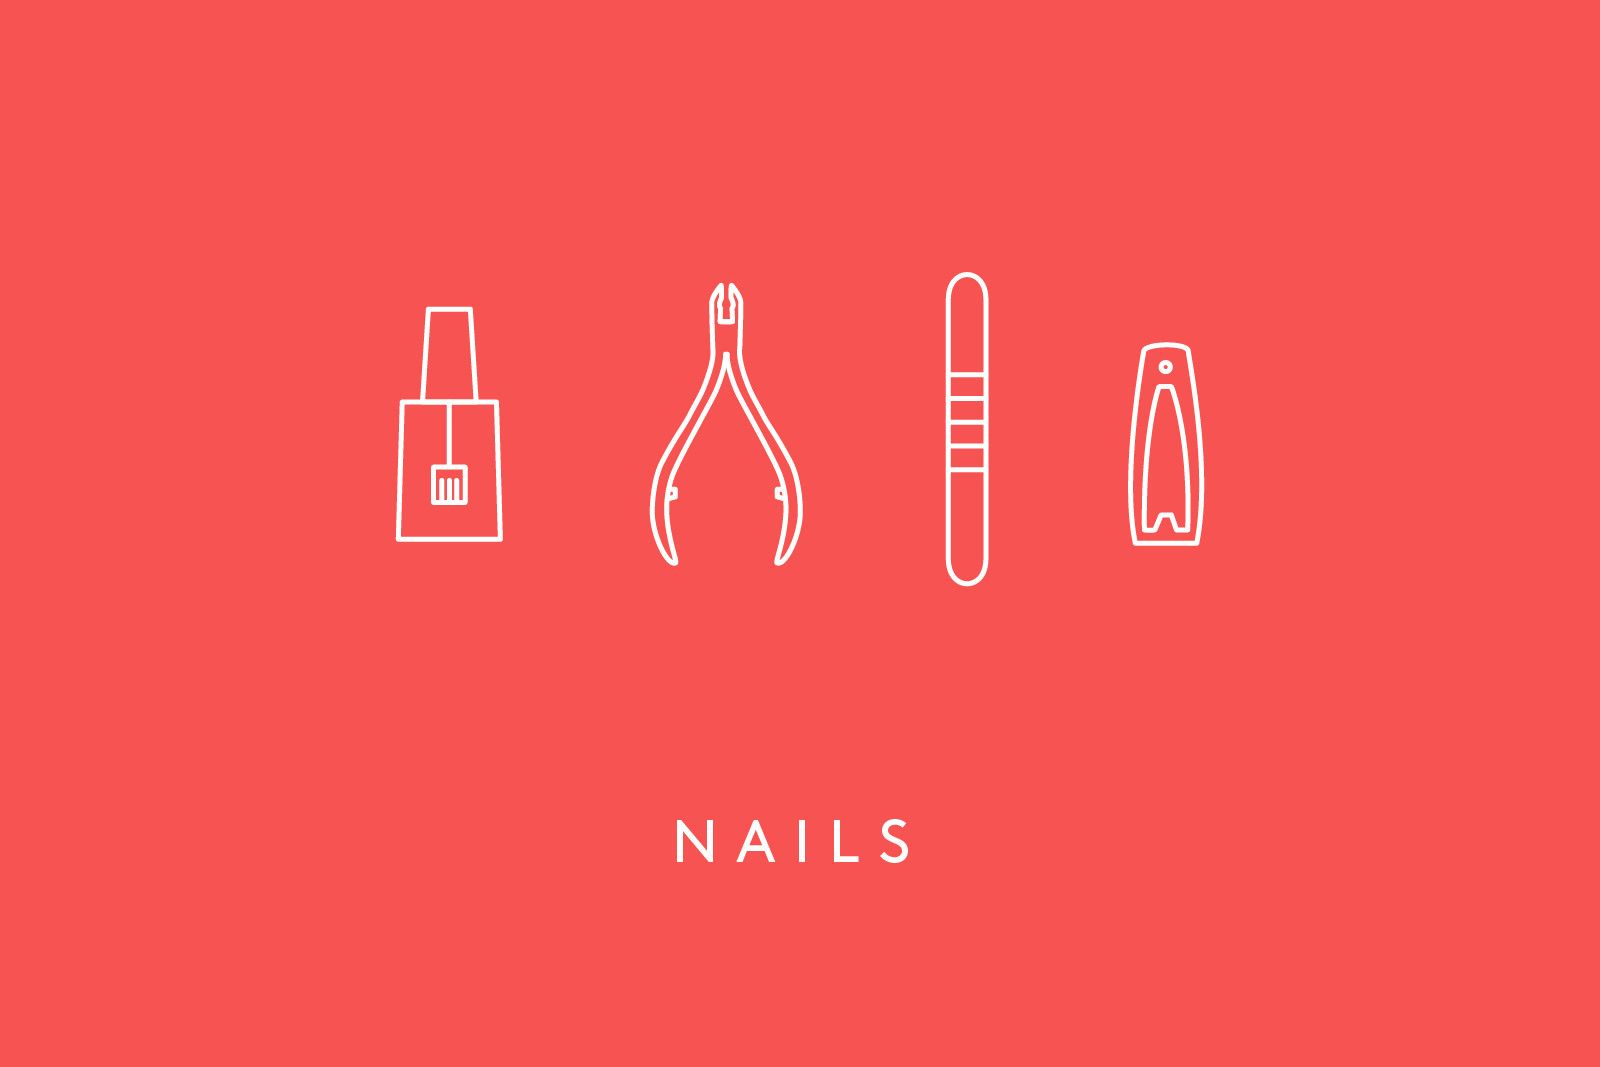 NYC Guide - Spas, Hair Salons, Cleaners | Salons, Spa and Salon ideas